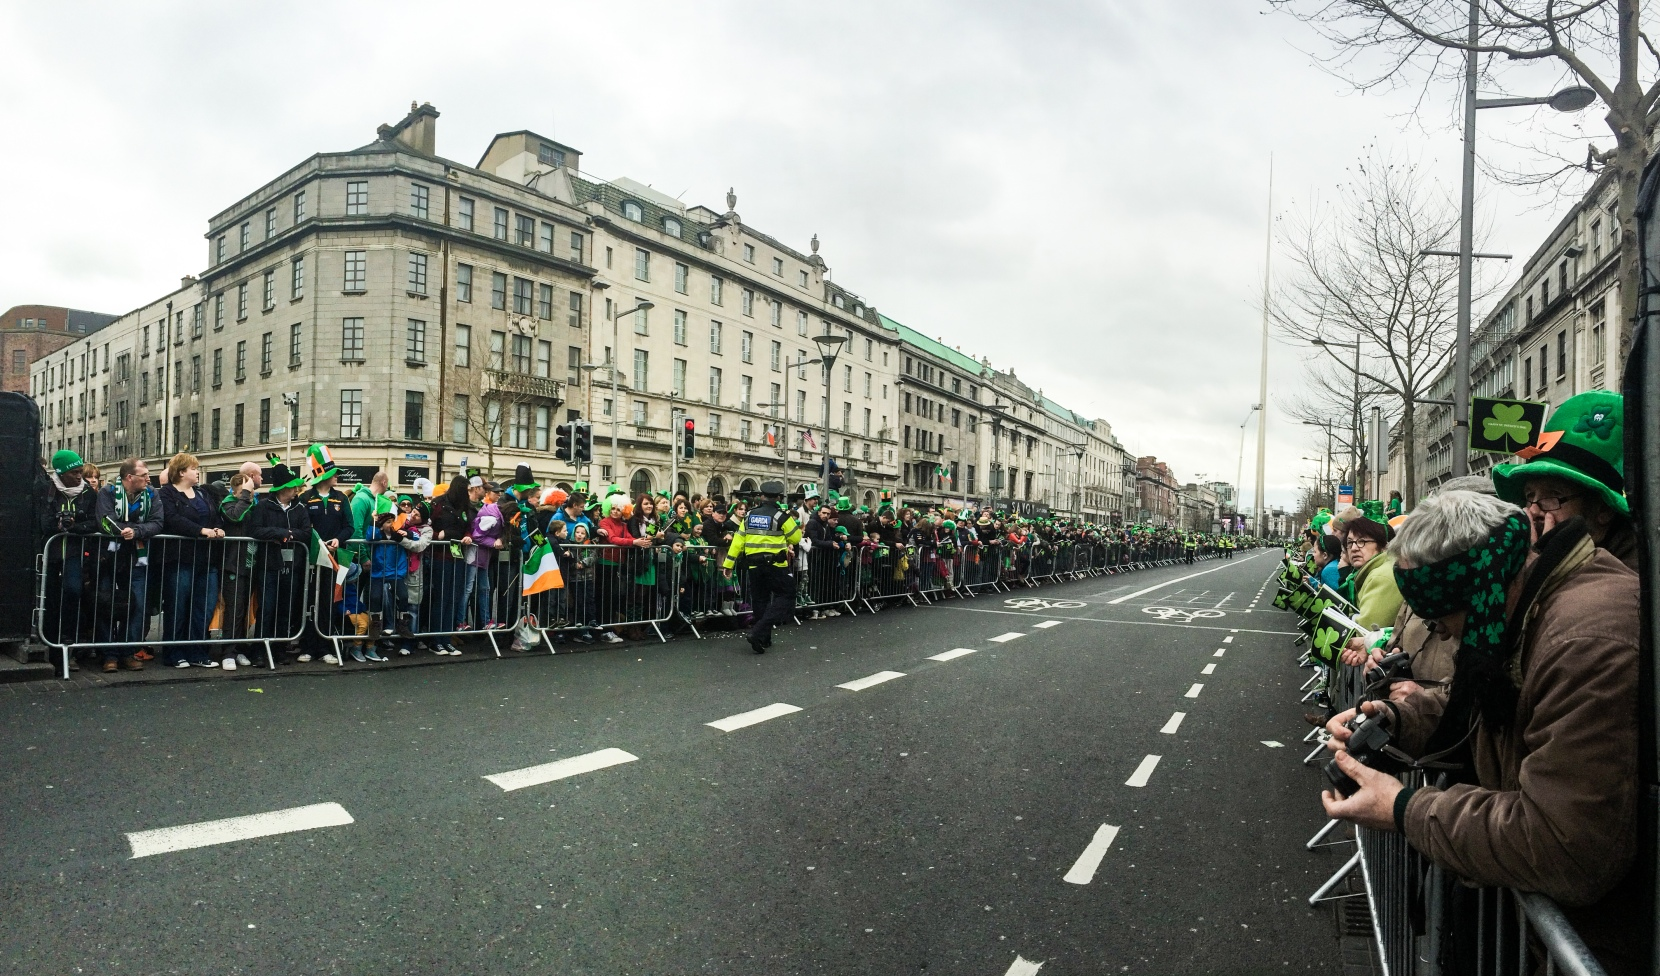 The City Center. I surprisingly got this shot from the iPhone 5s panoramic setting before the parade kicked off and was pleasantly surprised with the results.